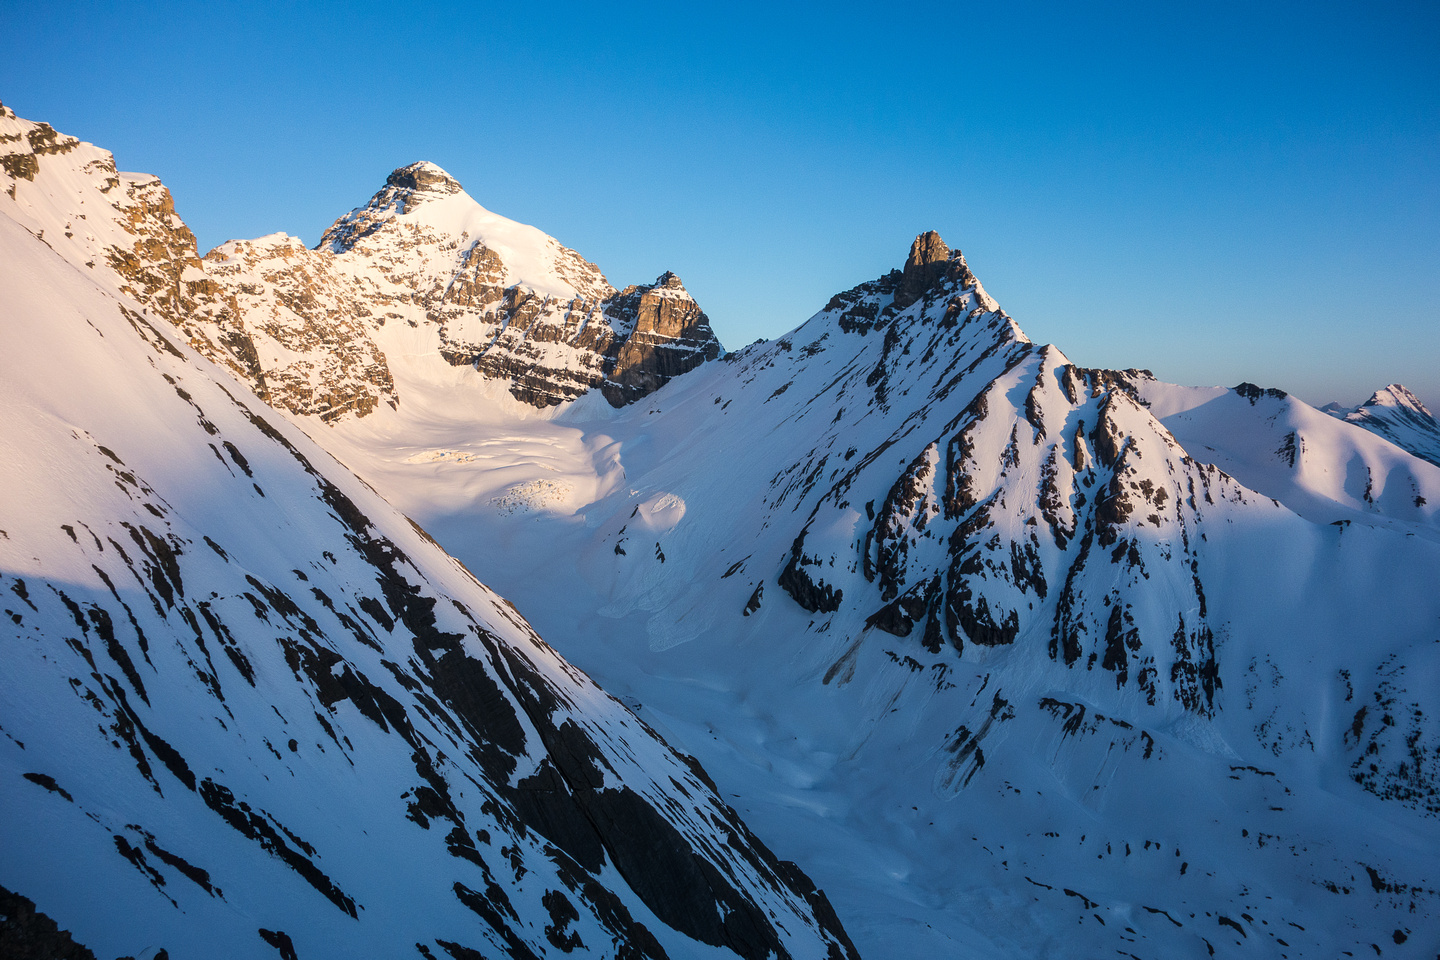 Looking at the Hilda Glacier and peak from the summit of Parker Ridge.